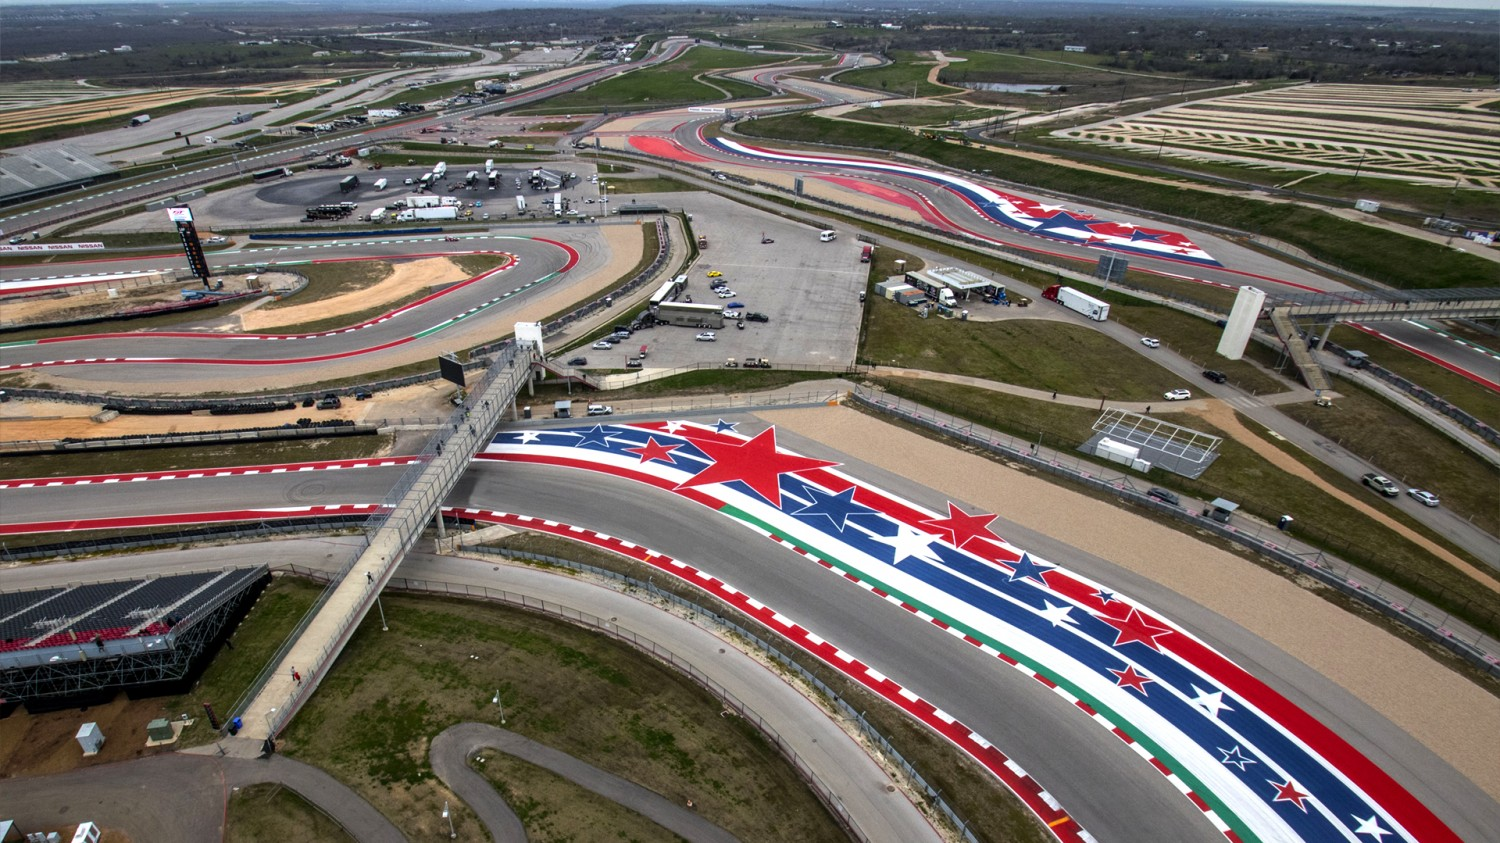 2020 Pirelli GT4 America Sprint Season Springs To Action At Circuit of the Americas with seventeen entries